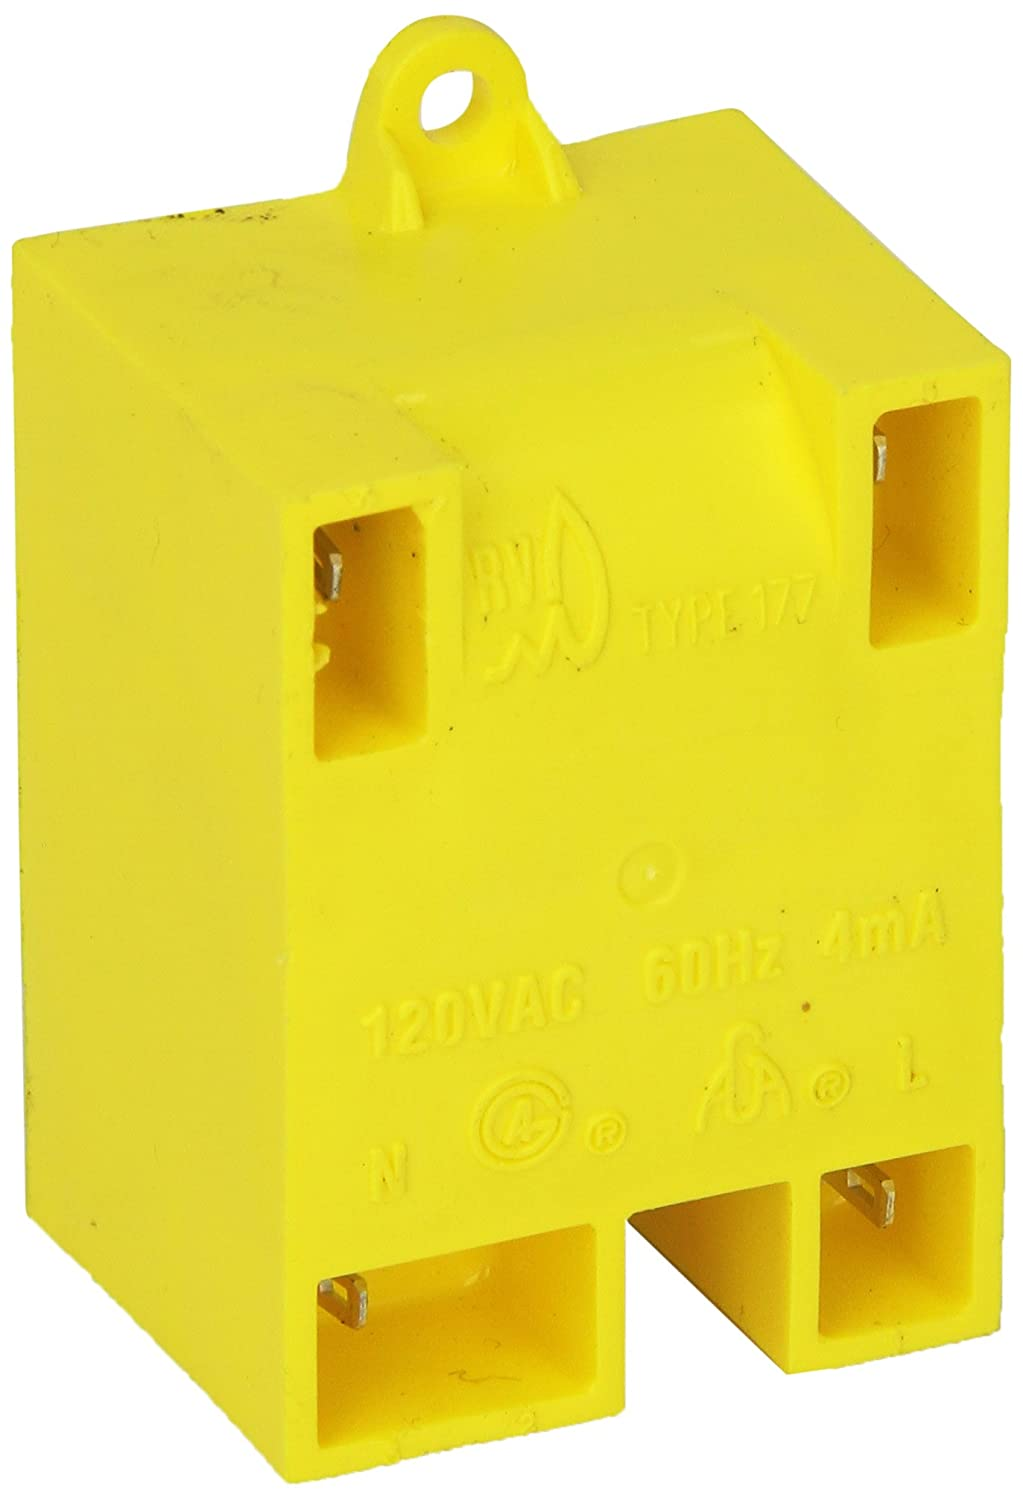 General Electric WB20X107 Range/Stove/Oven Spark Module